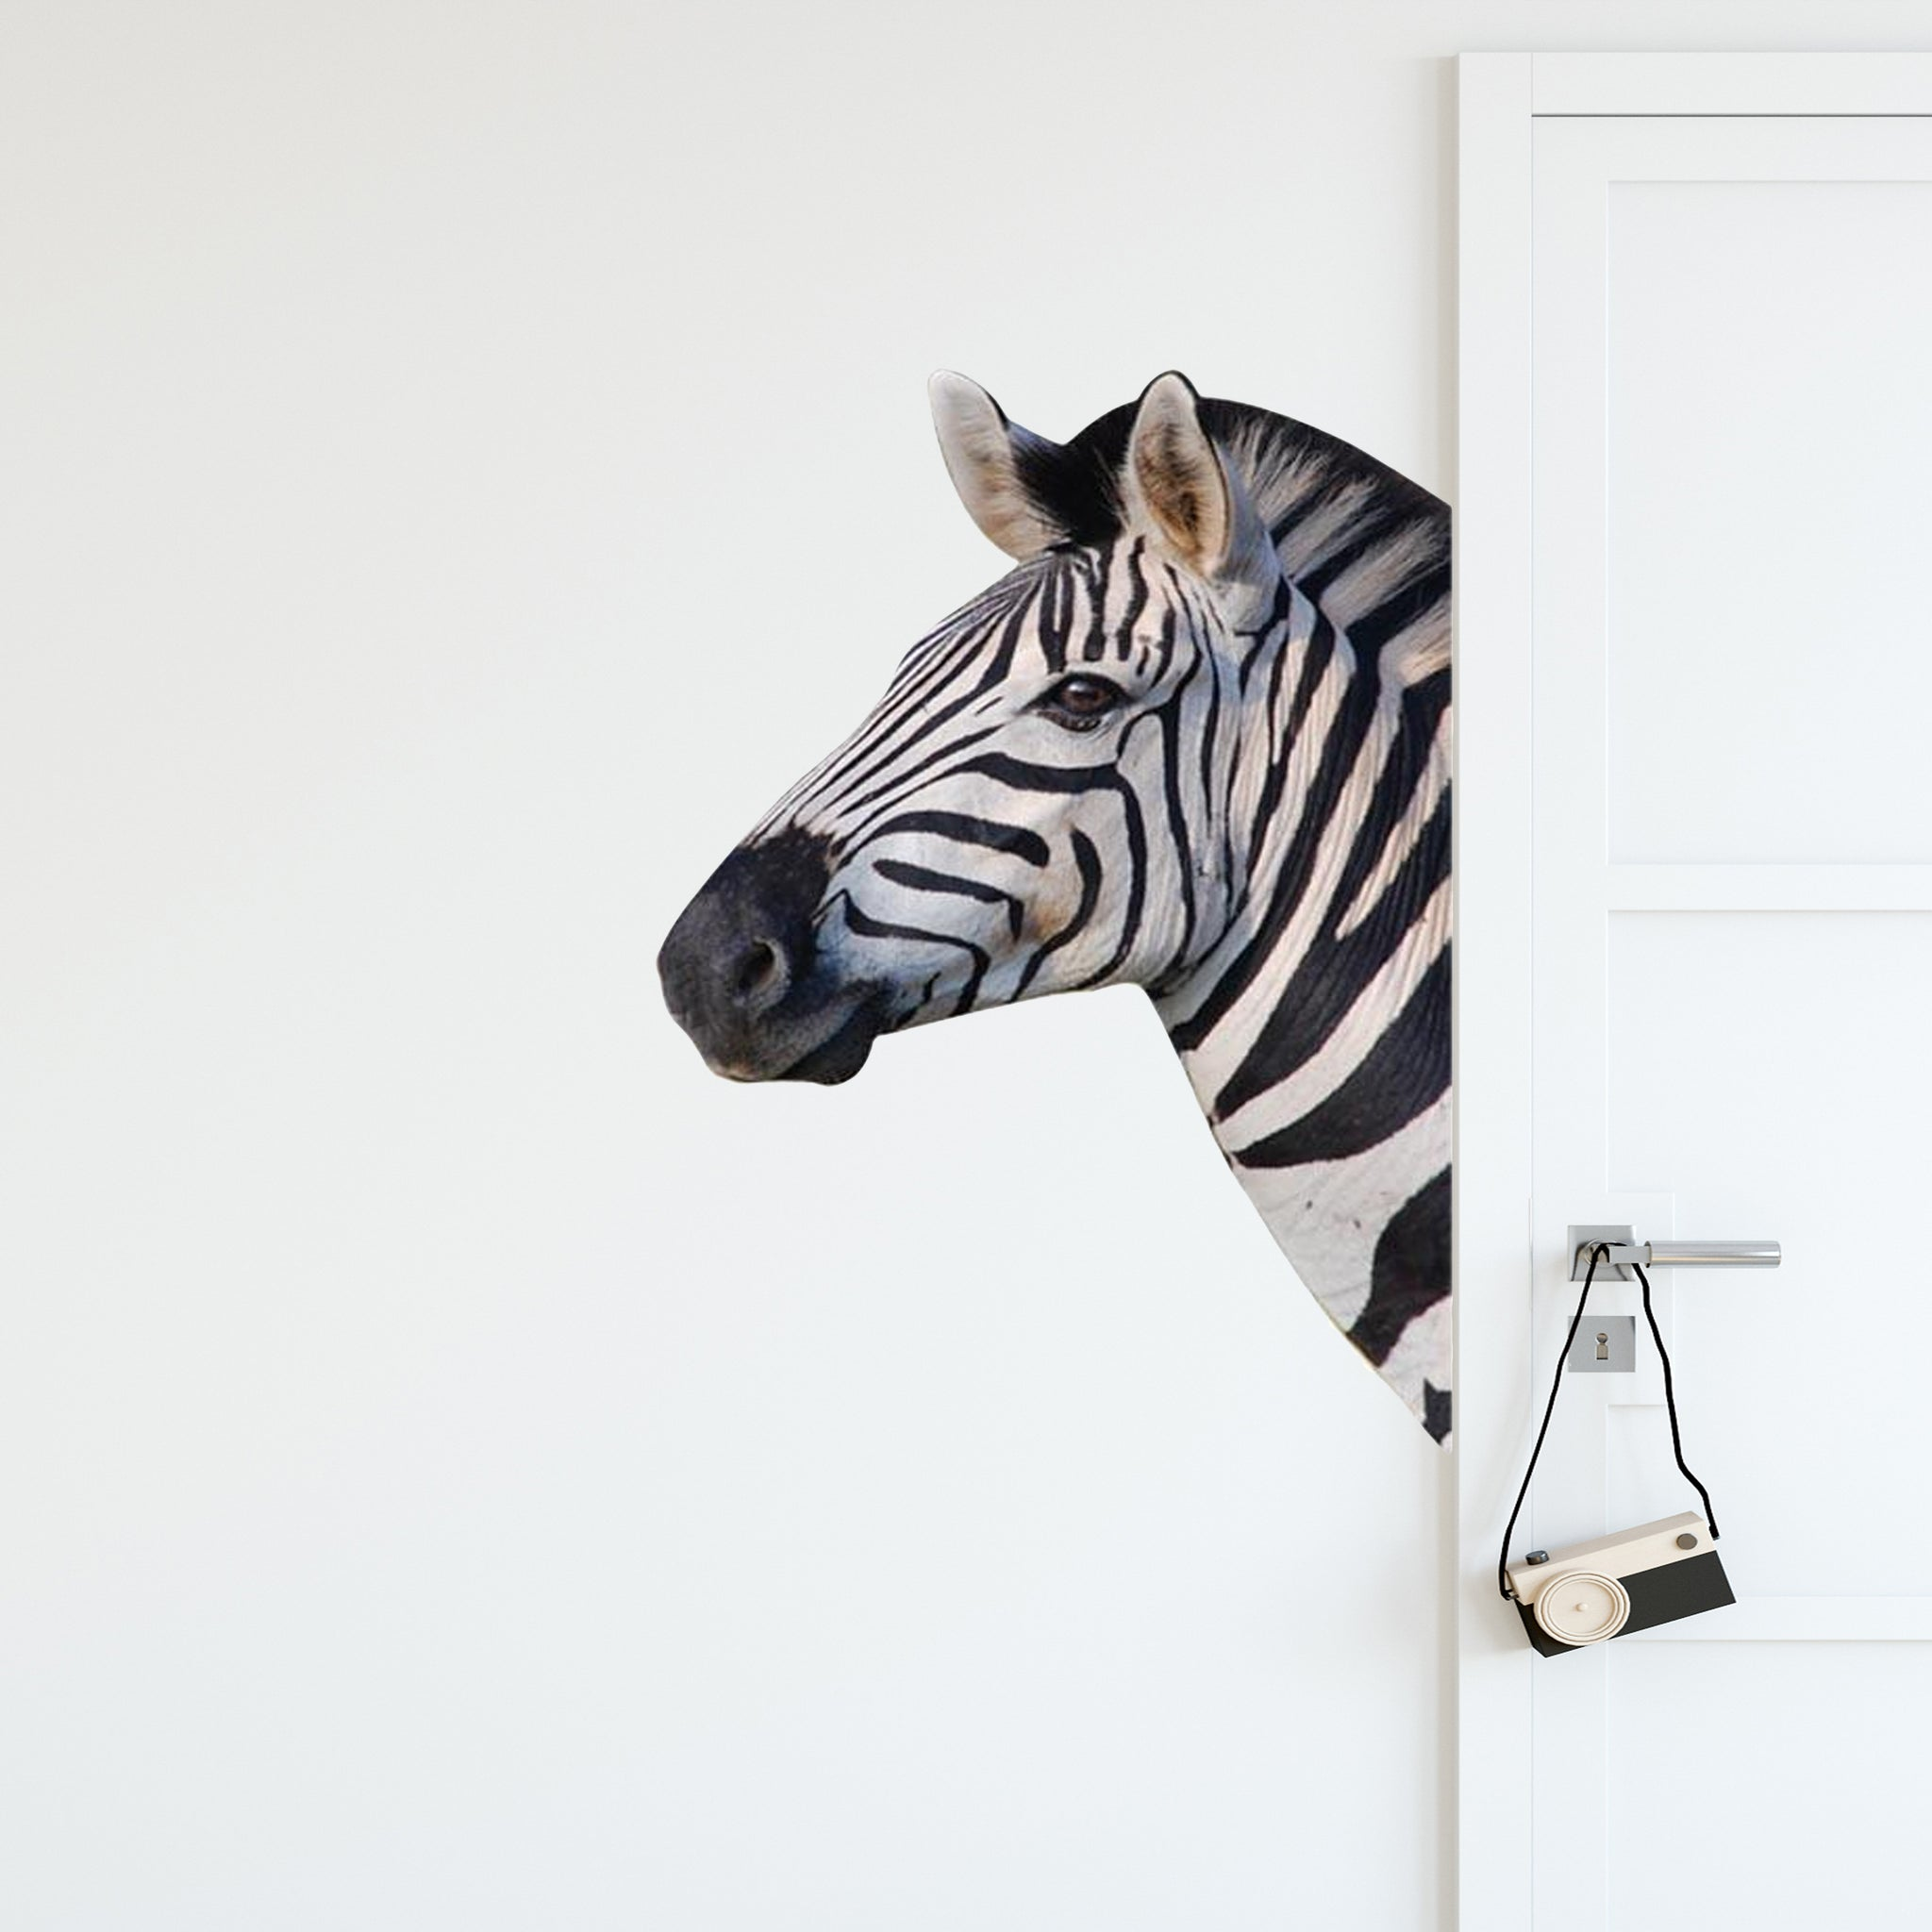 VWAQ Zebra Head Peel and Stick Wall art Decal - G503